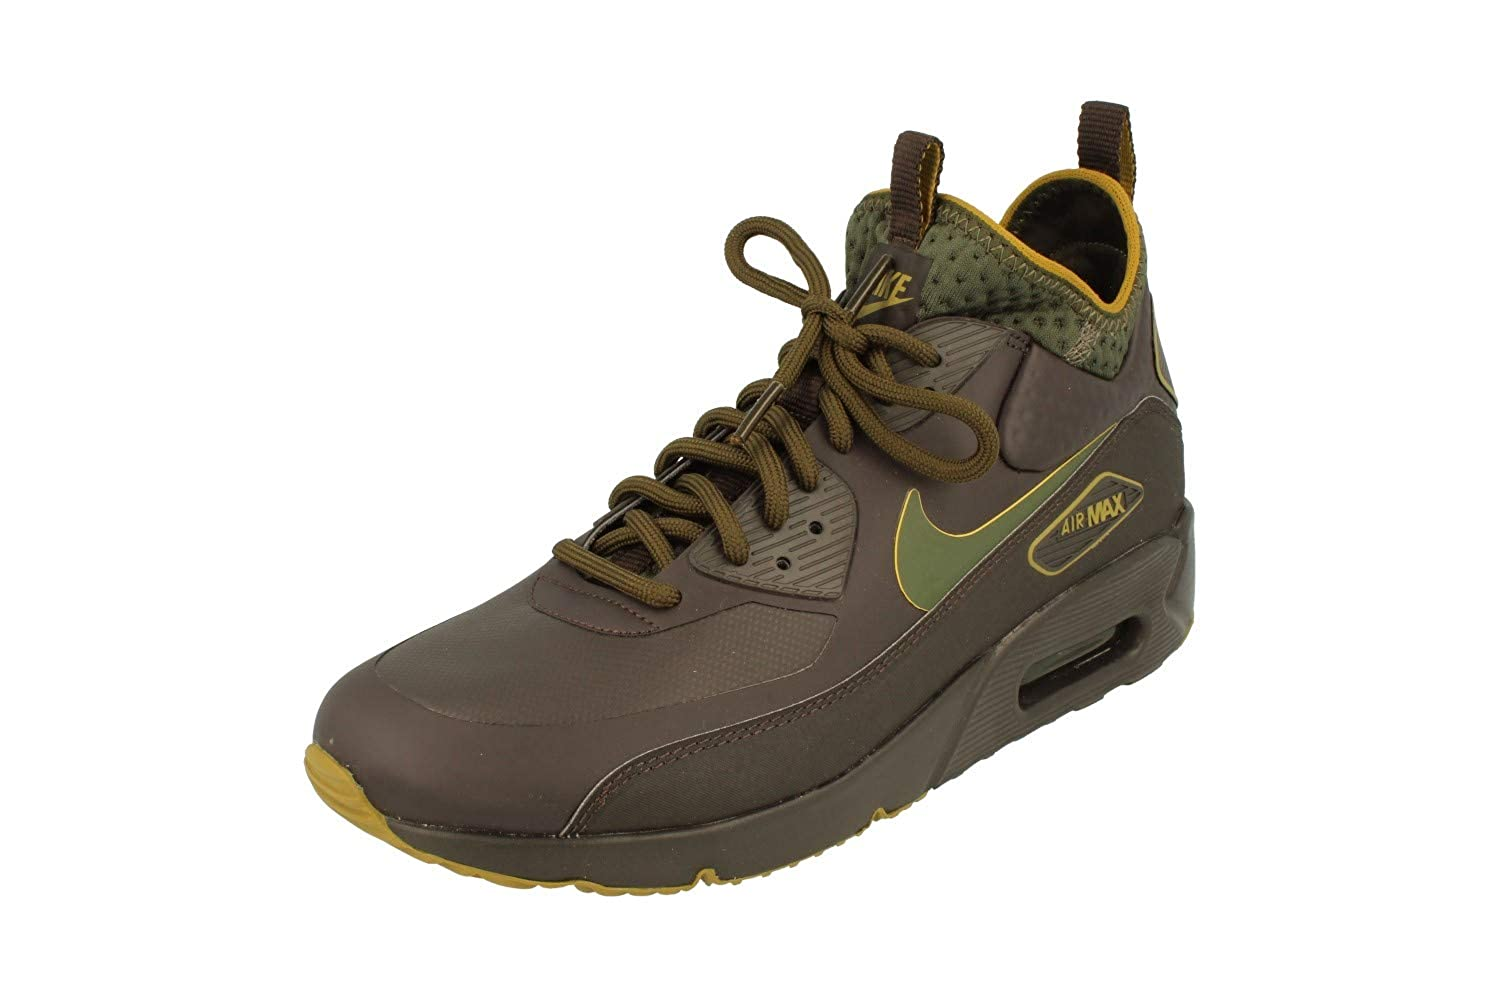 7c512adaa2 Nike Air Max 90 Ultra Mid Winter SE Mens Hi Top Trainers AA4423 Sneakers  Shoes (UK 7.5 US 8.5 EU 42, Velvet Brown 200): Amazon.co.uk: Shoes & Bags